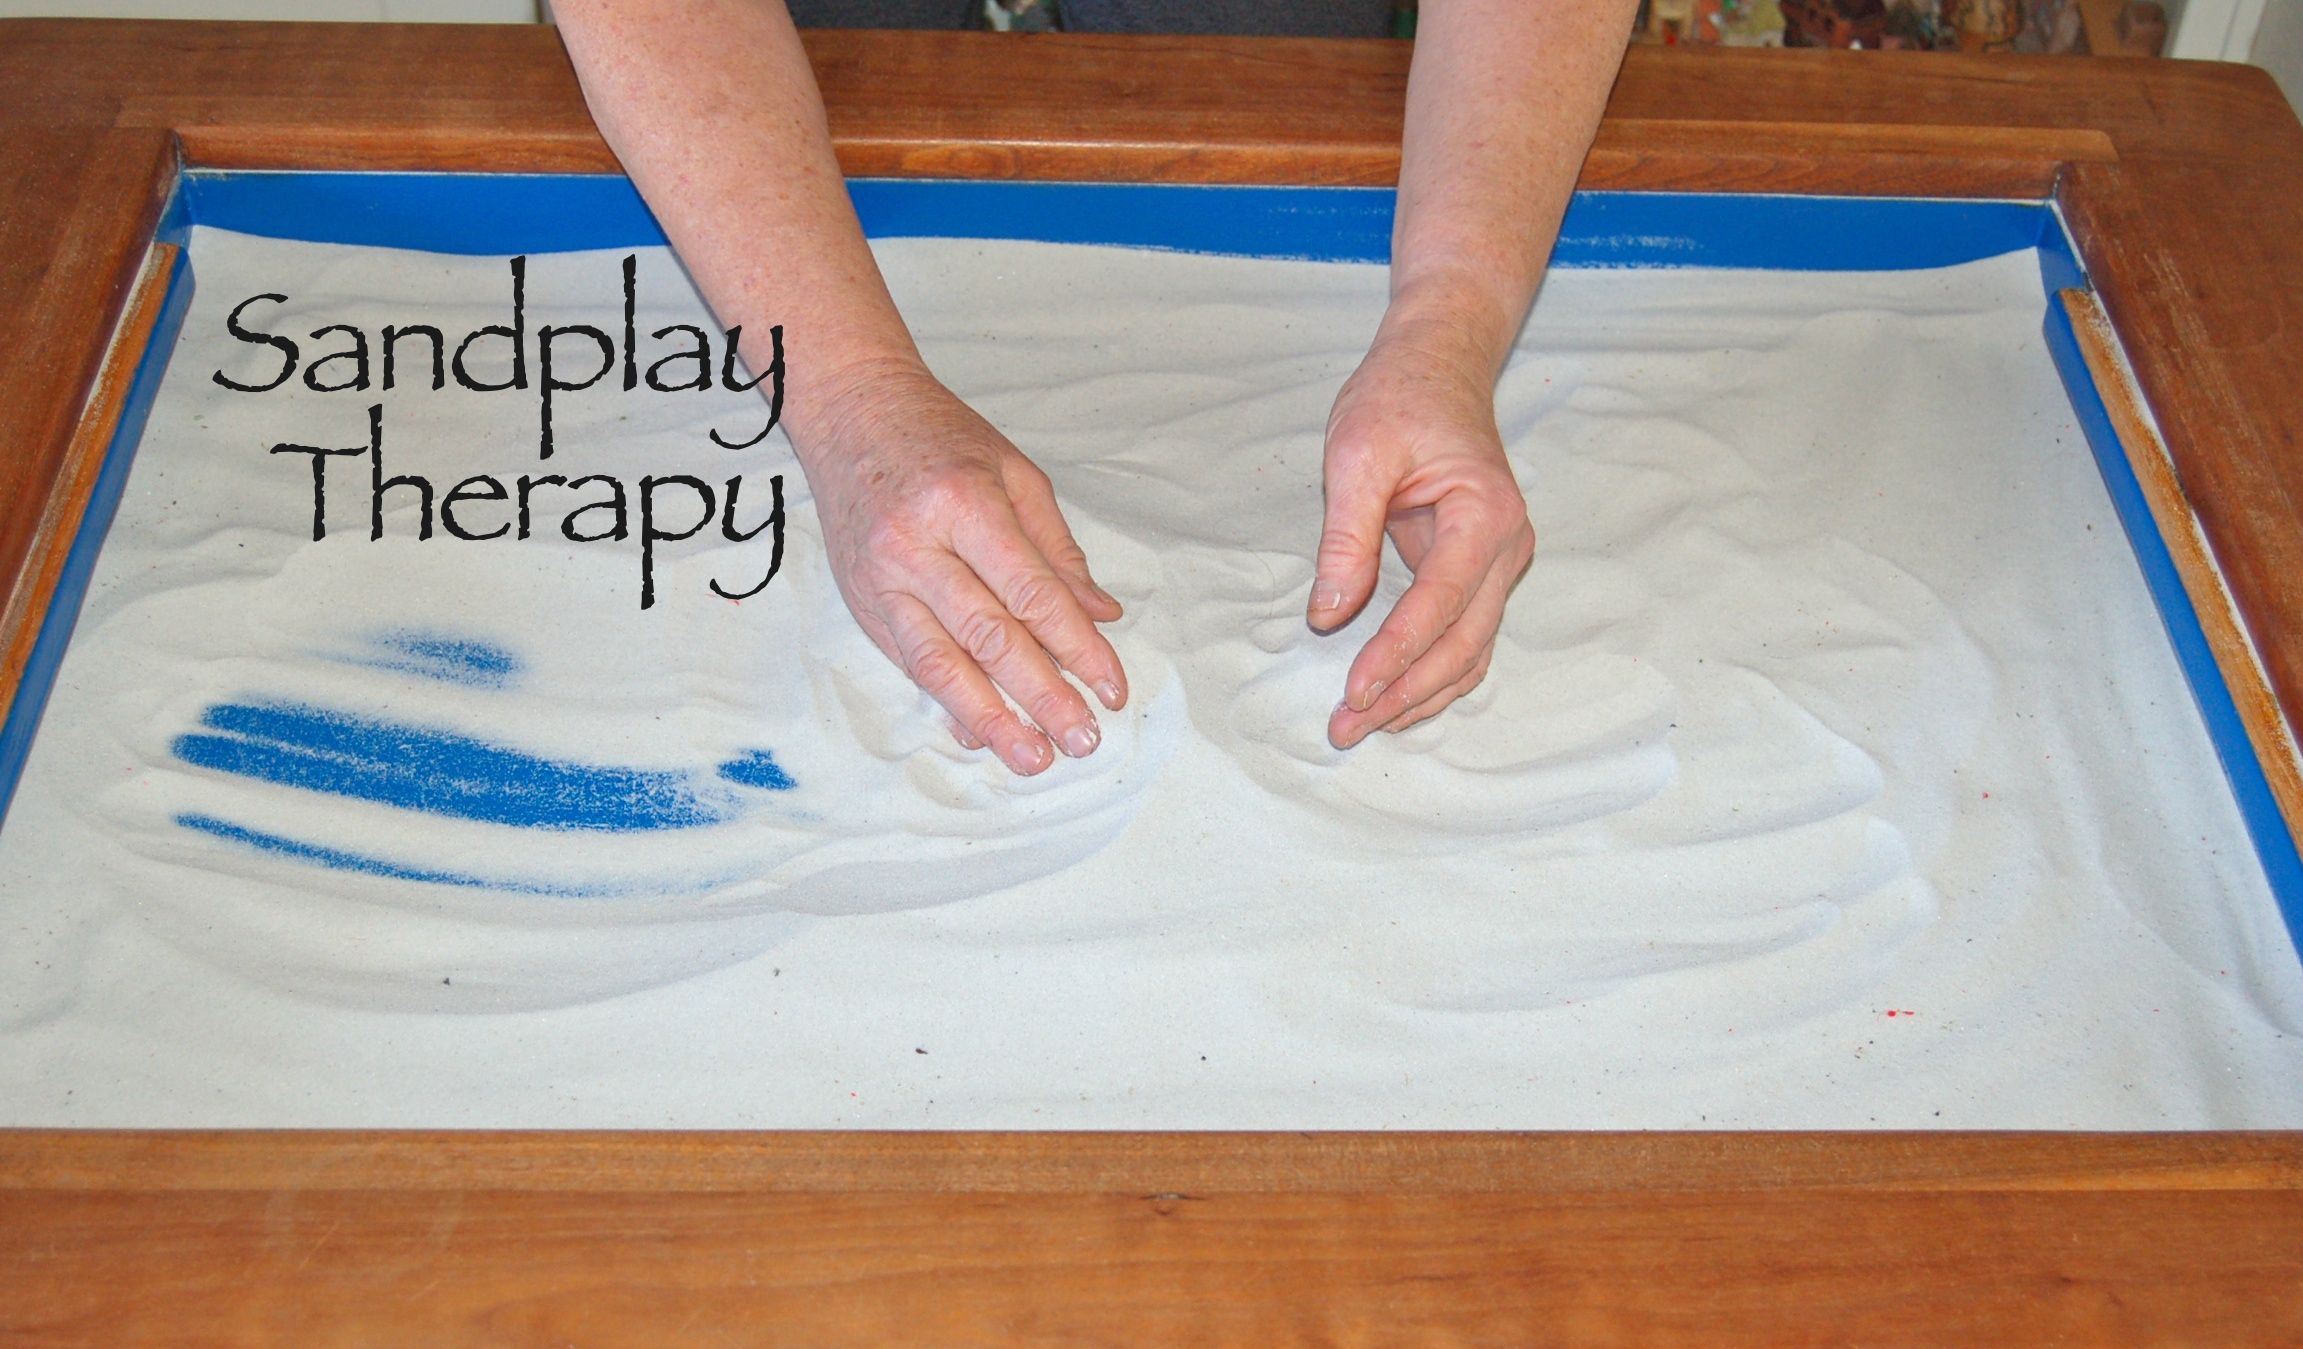 Sandplay Therapy Sandplay Pinterest Sandplay Therapy And Therapy